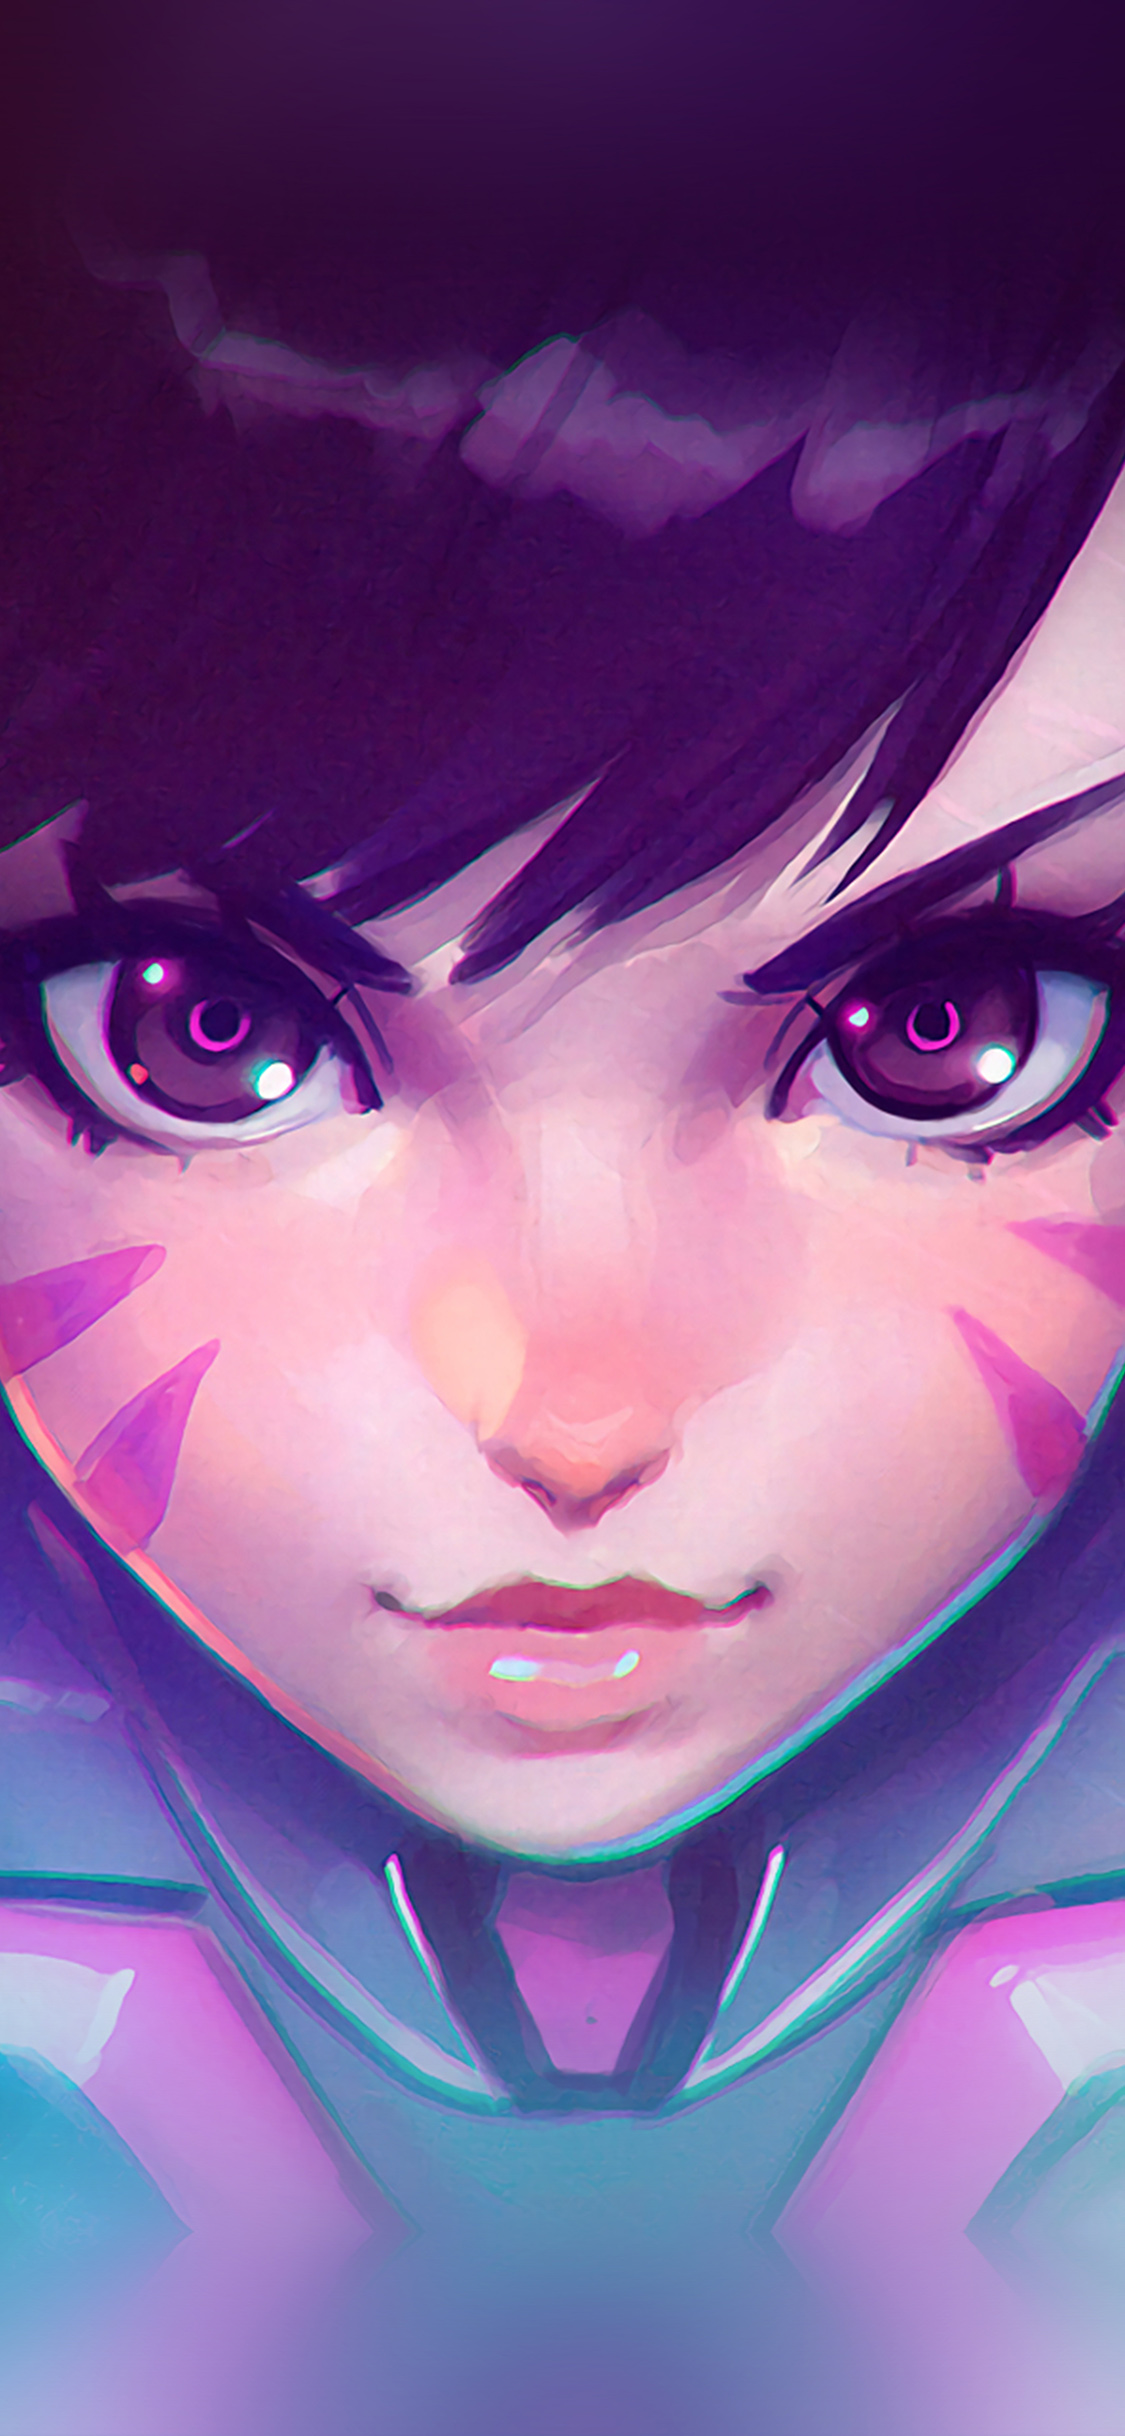 iPhoneXpapers.com-Apple-iPhone-wallpaper-ar94-overwatch-diva-cute-game-art-illustration